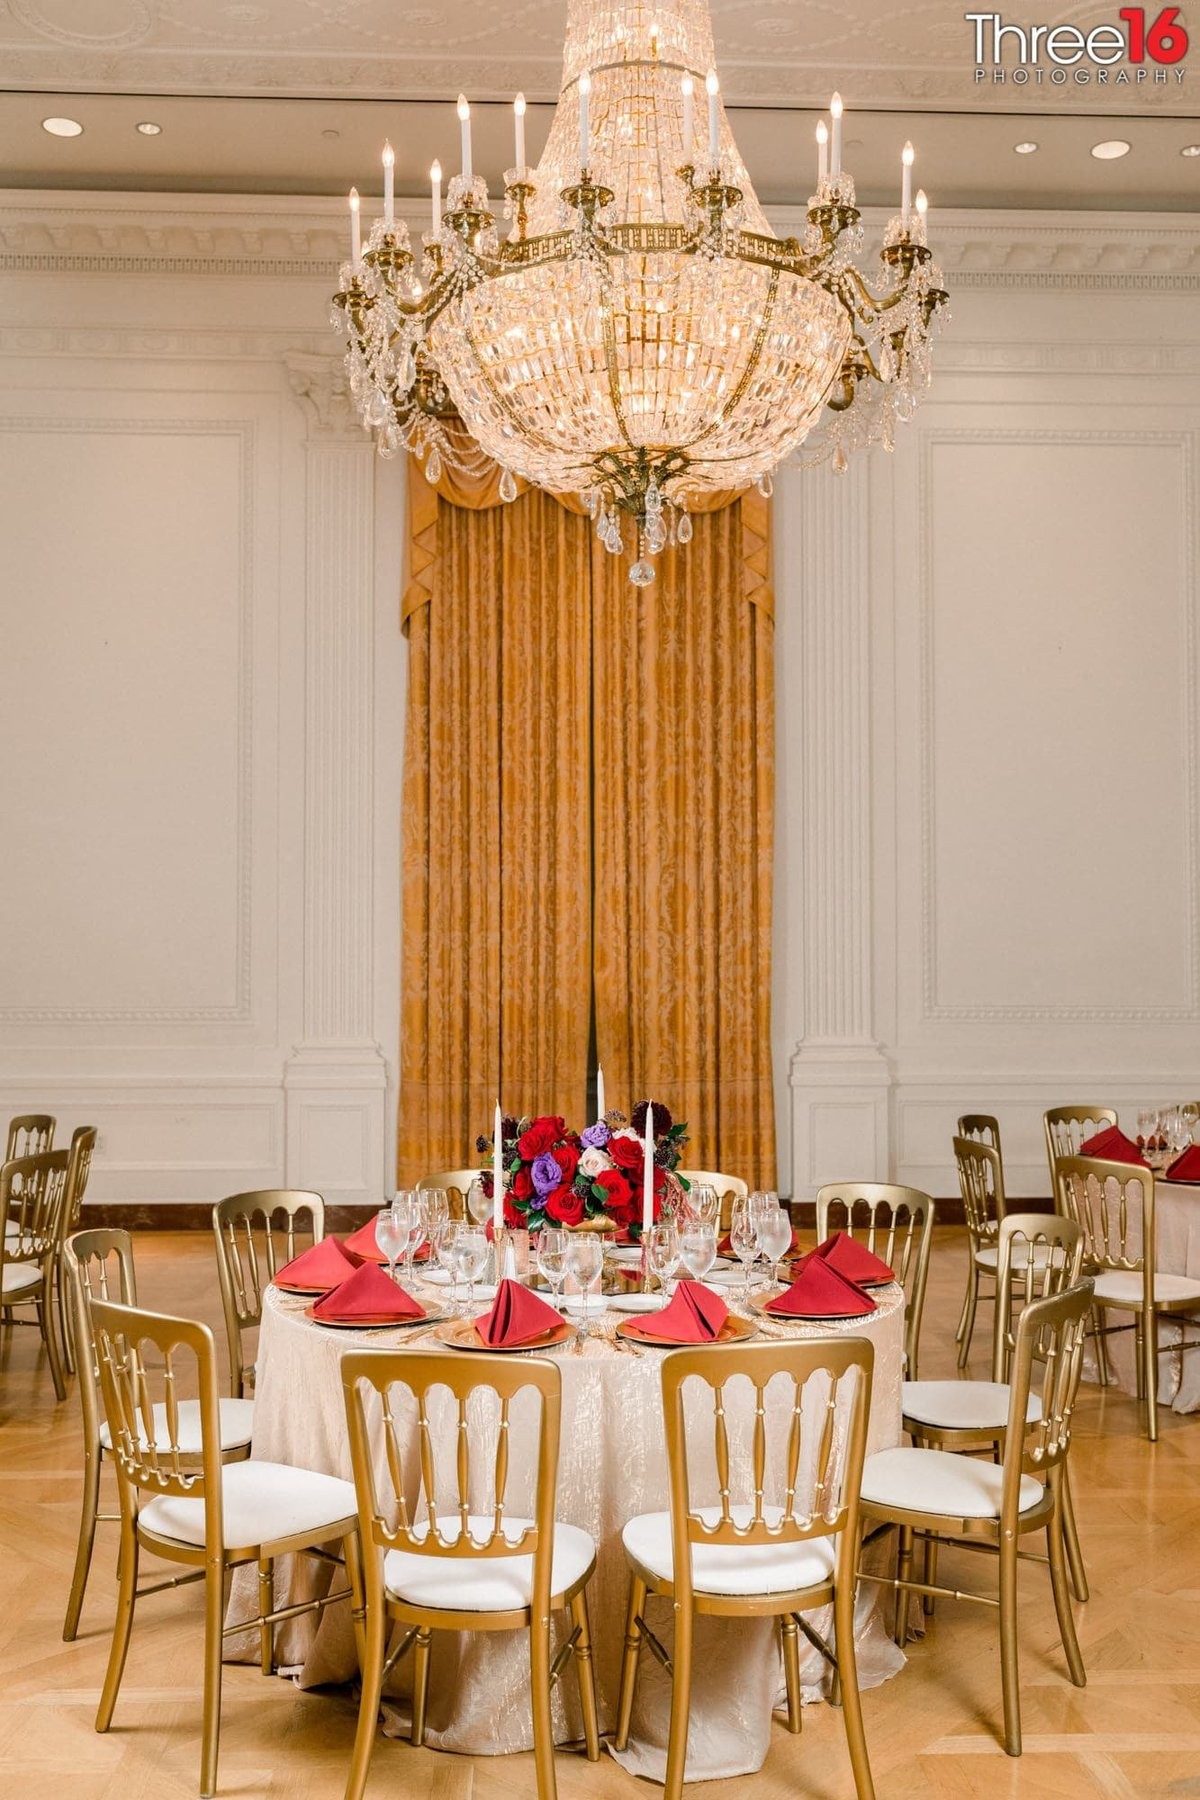 Richard Nixon Library wedding reception table display with long vertical drapes in the background